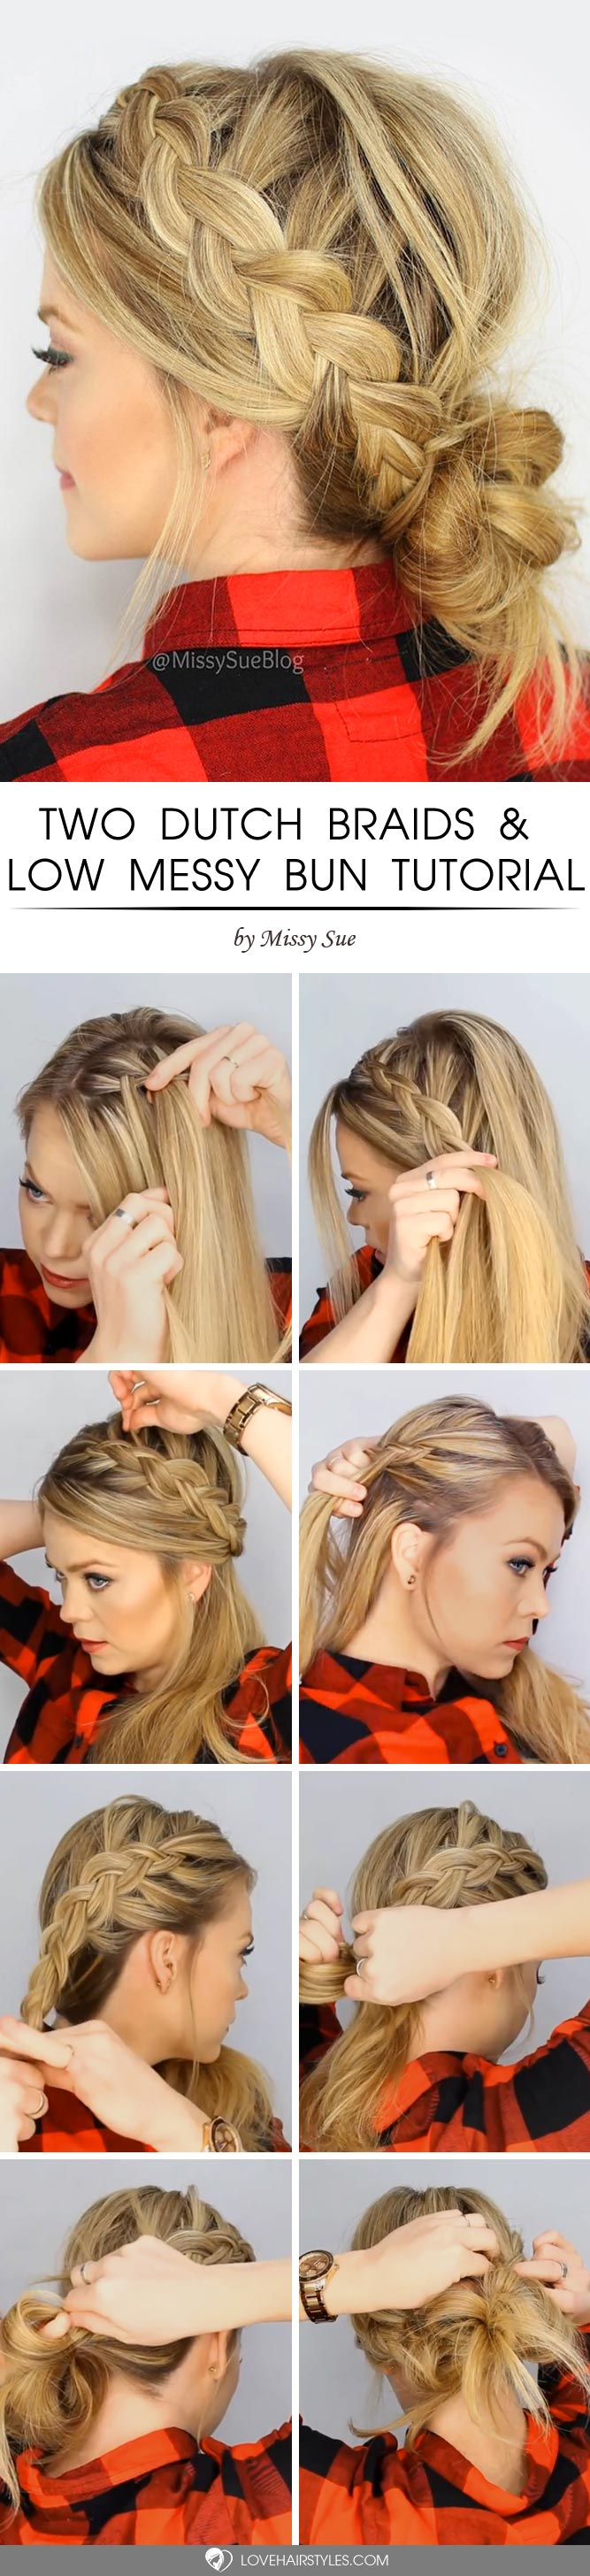 Two Dutch Braids & Low Messy Bun Tutorial #howtodutchbraid #dutchbraid #tutorials #braids #hairstyles